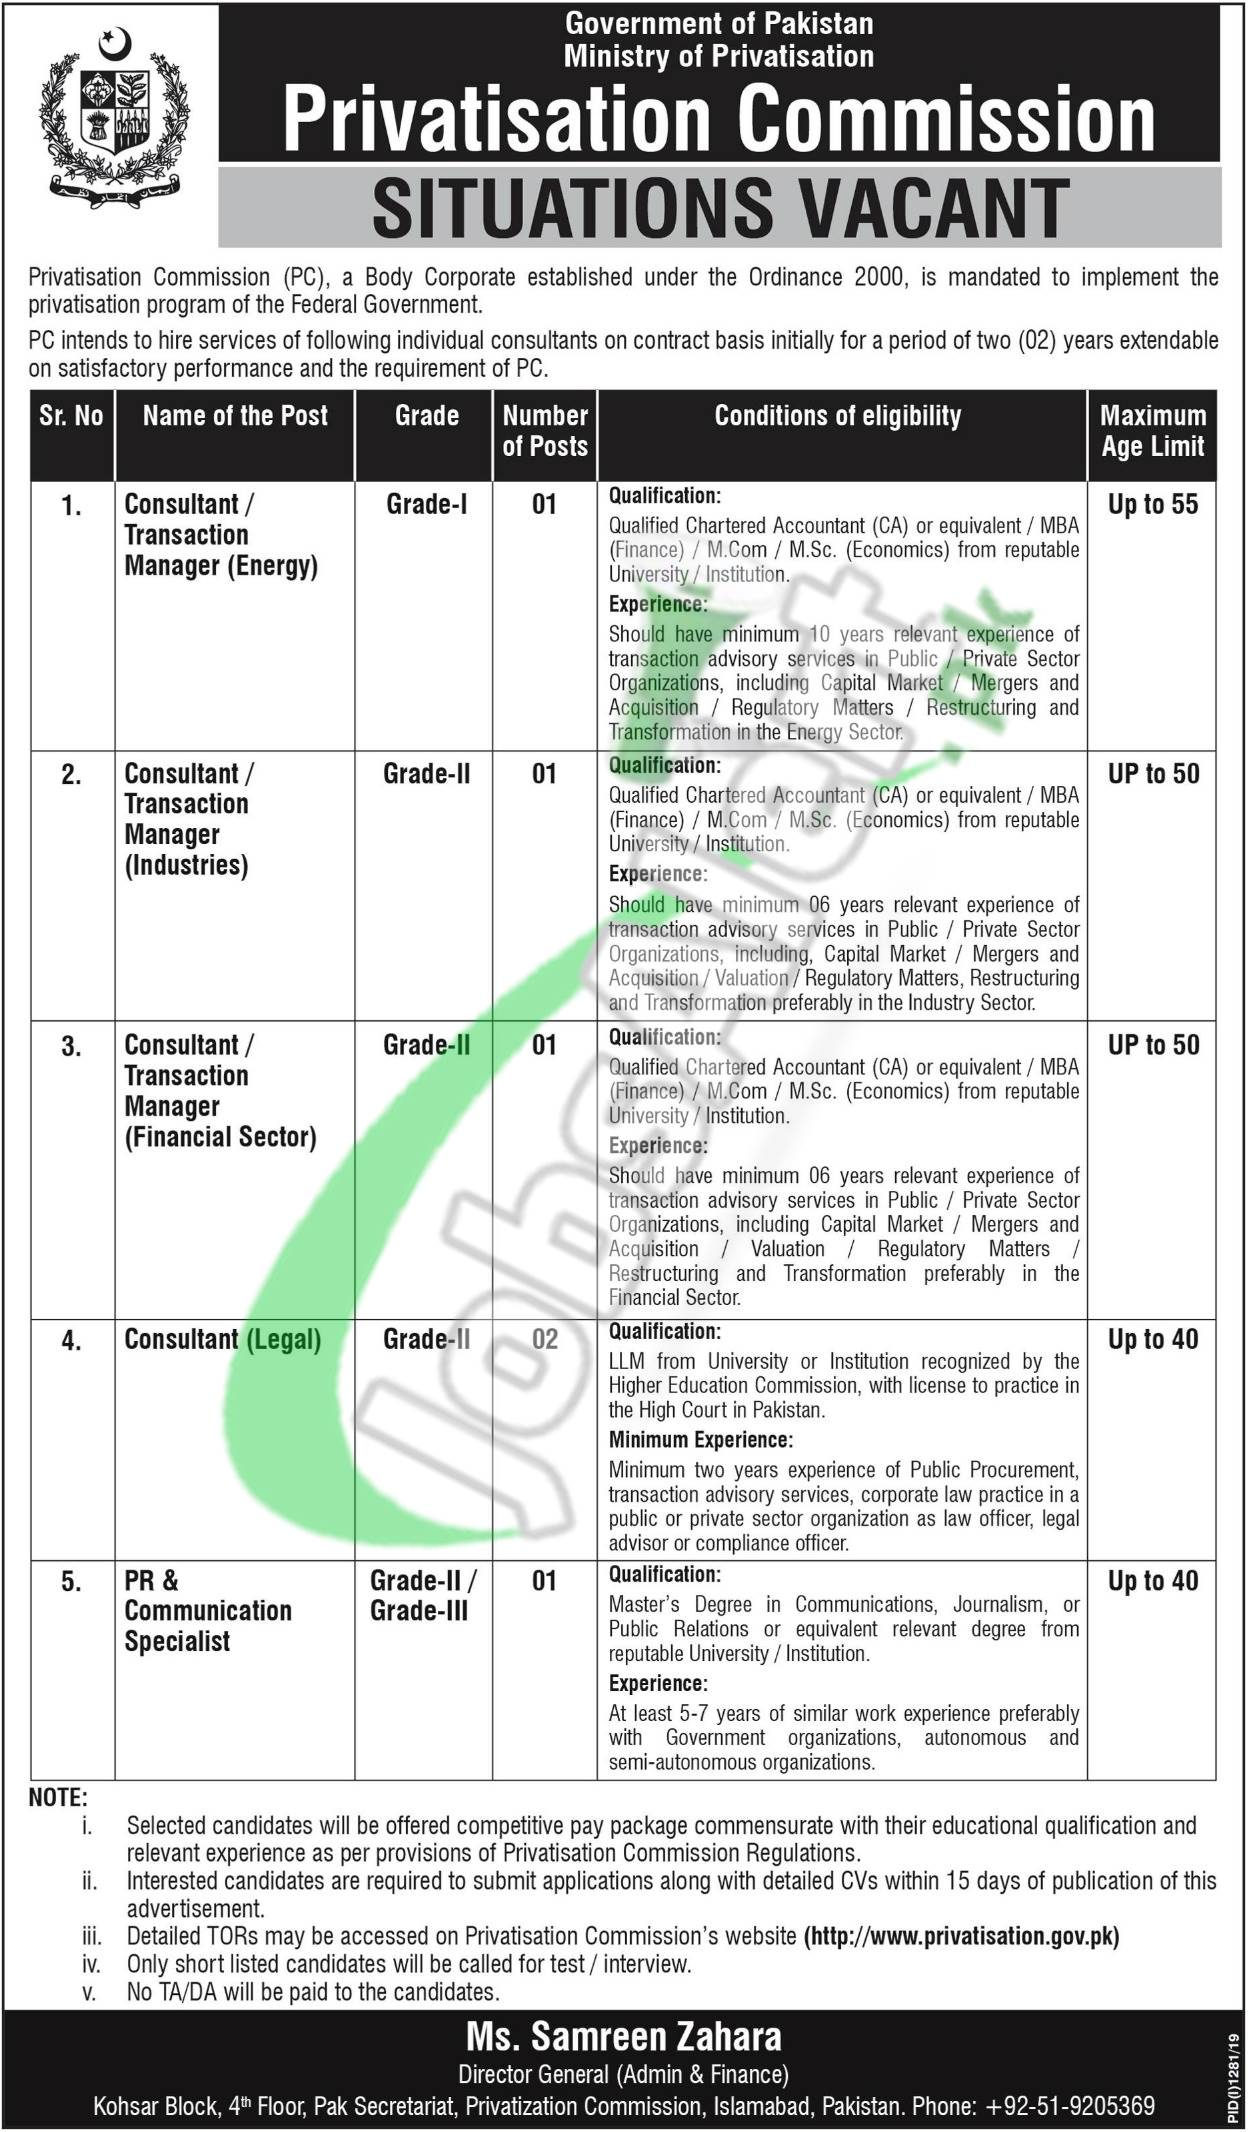 Ministry of Privatization Jobs 2019